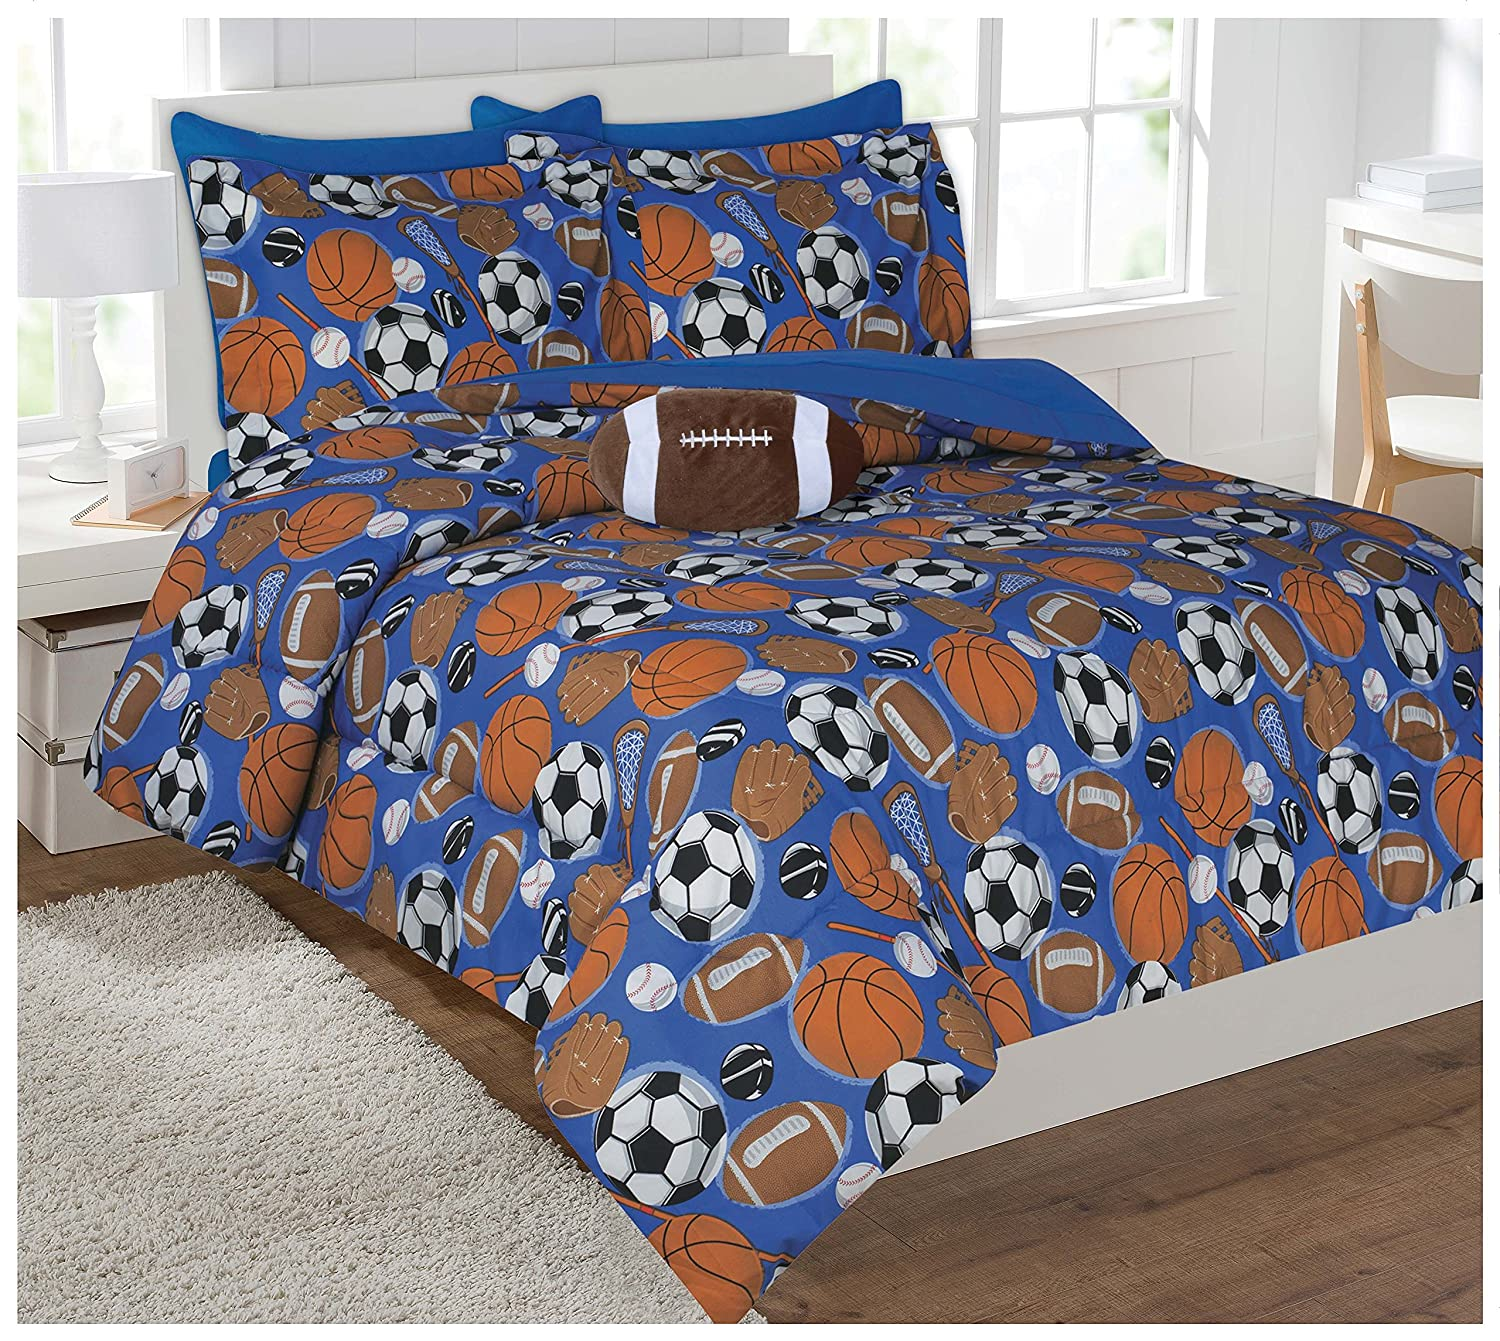 Fancy Collection Kids/teens Sports Football Basketball Baseball Soccer Design Luxury Comforter Furry Buddy Included